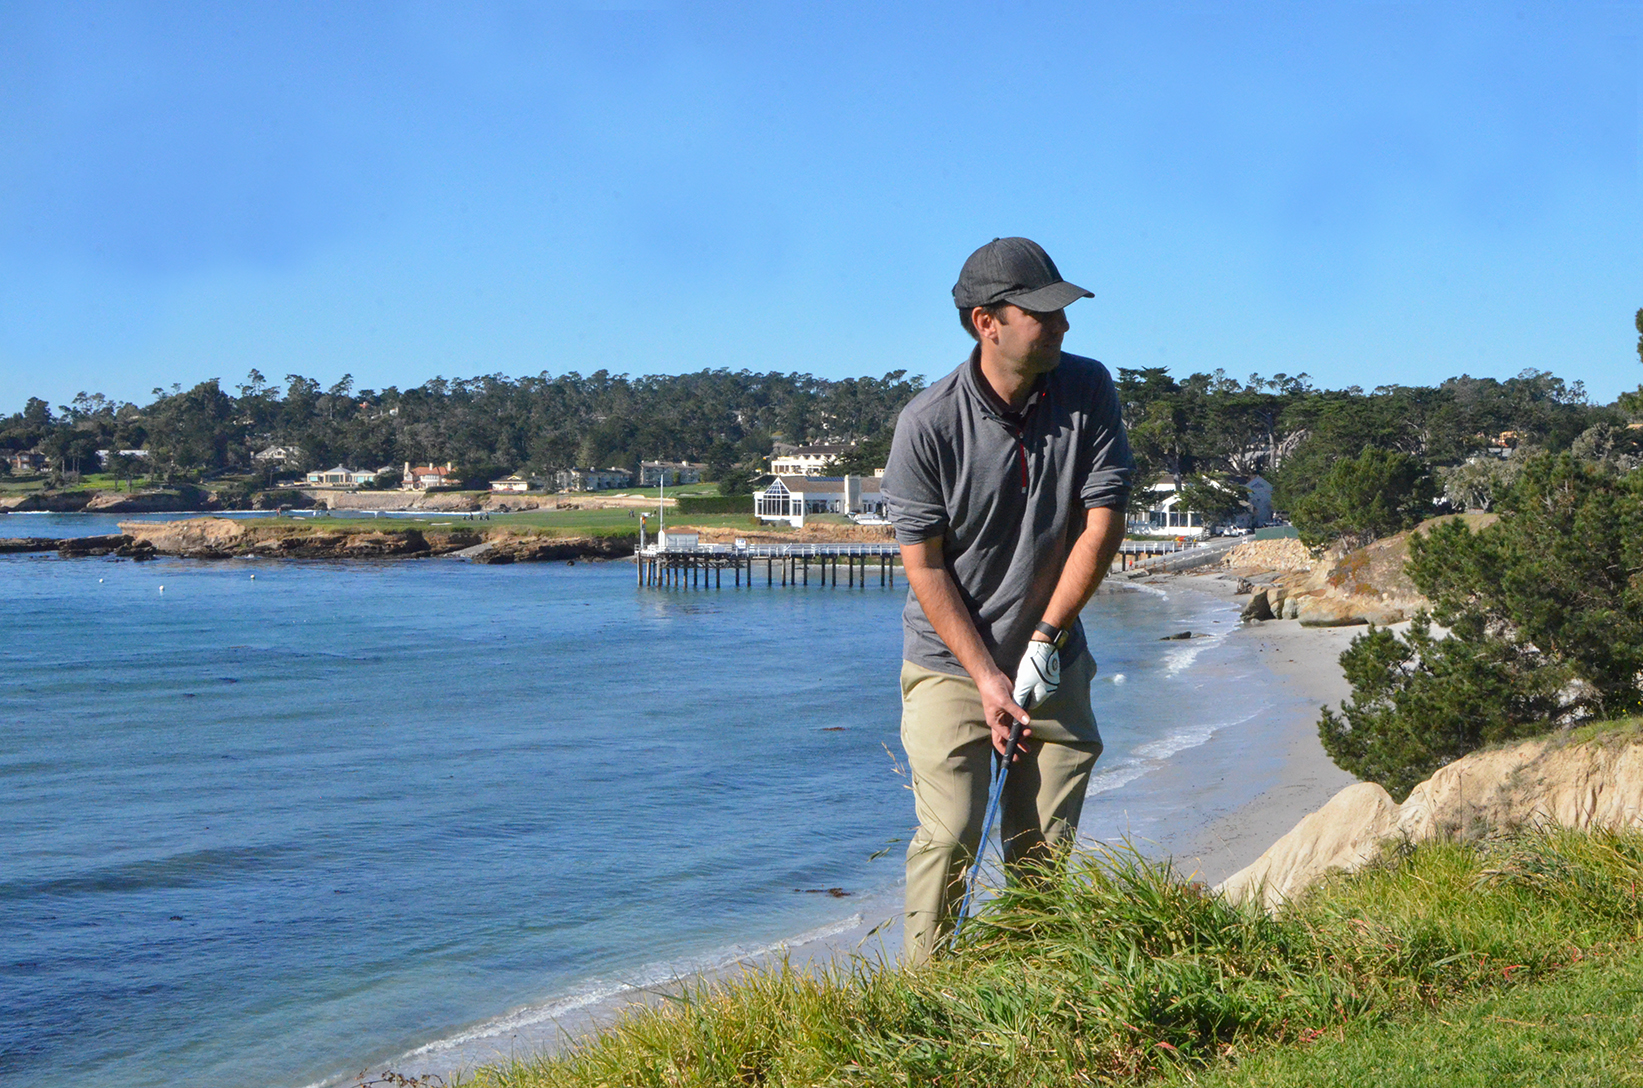 fifth hole at Pebble Beach